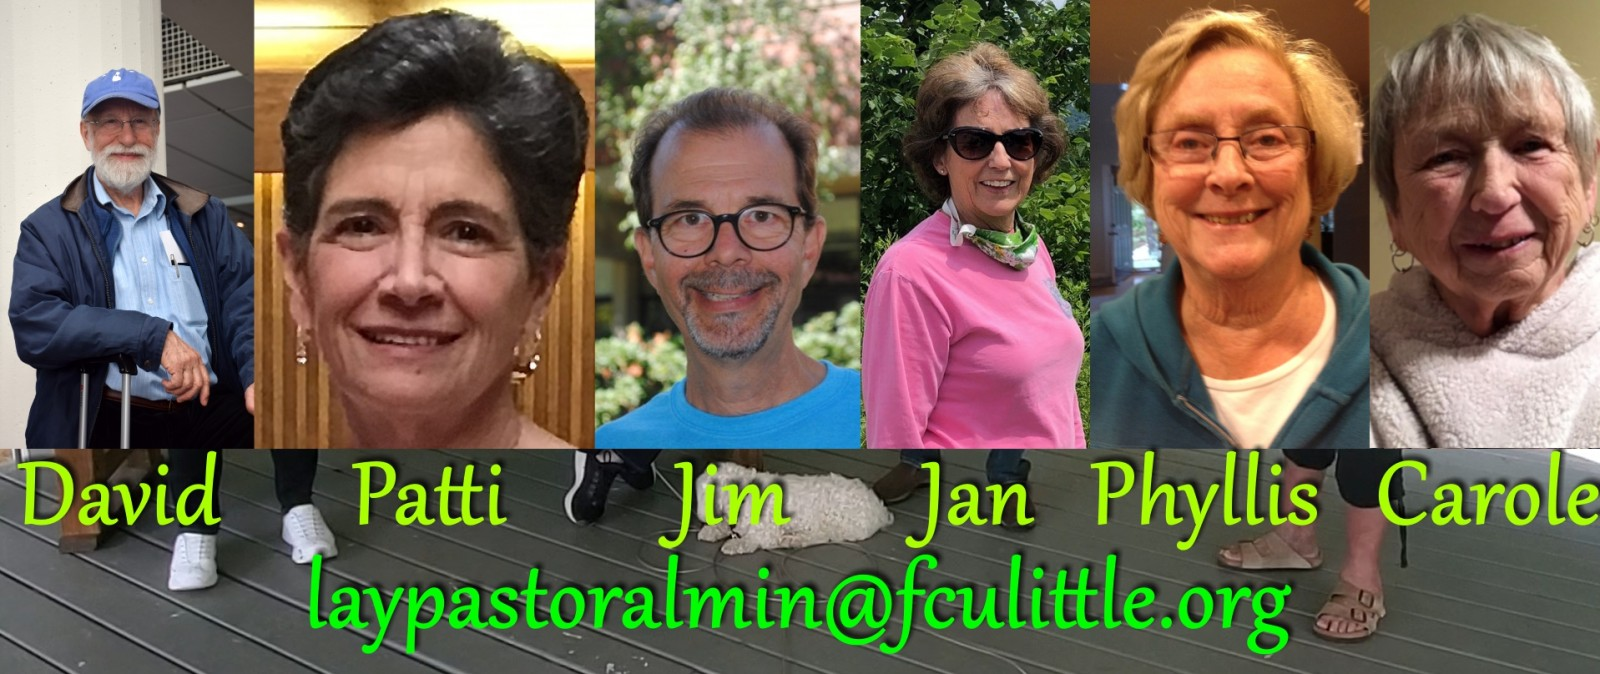 FCU Lay Pastoral Ministers